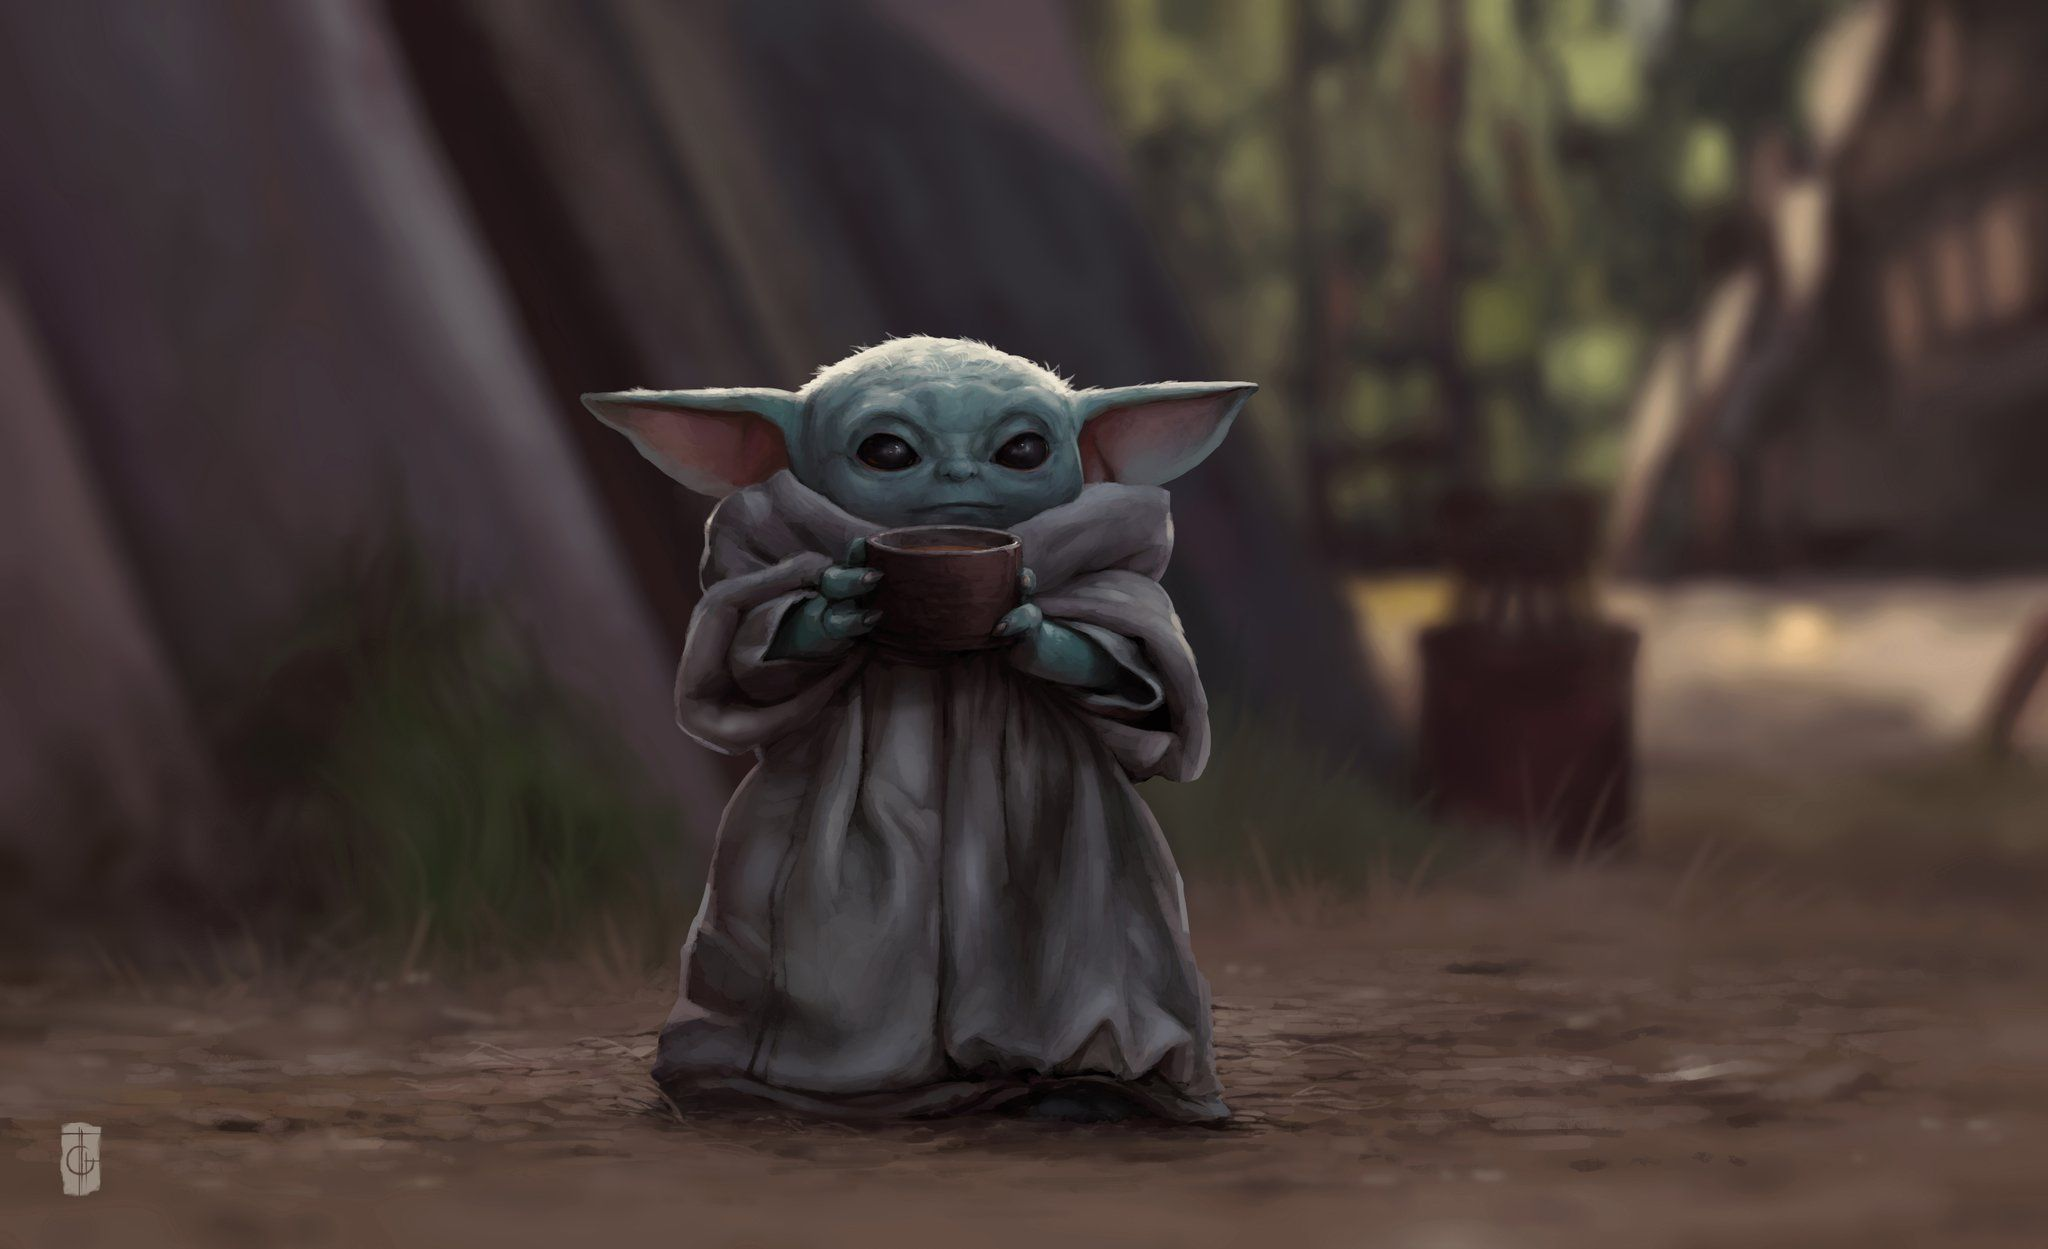 The Child With Cup An Art Print By Rodney Amirebrahimi Yoda Images Yoda Mandalorian